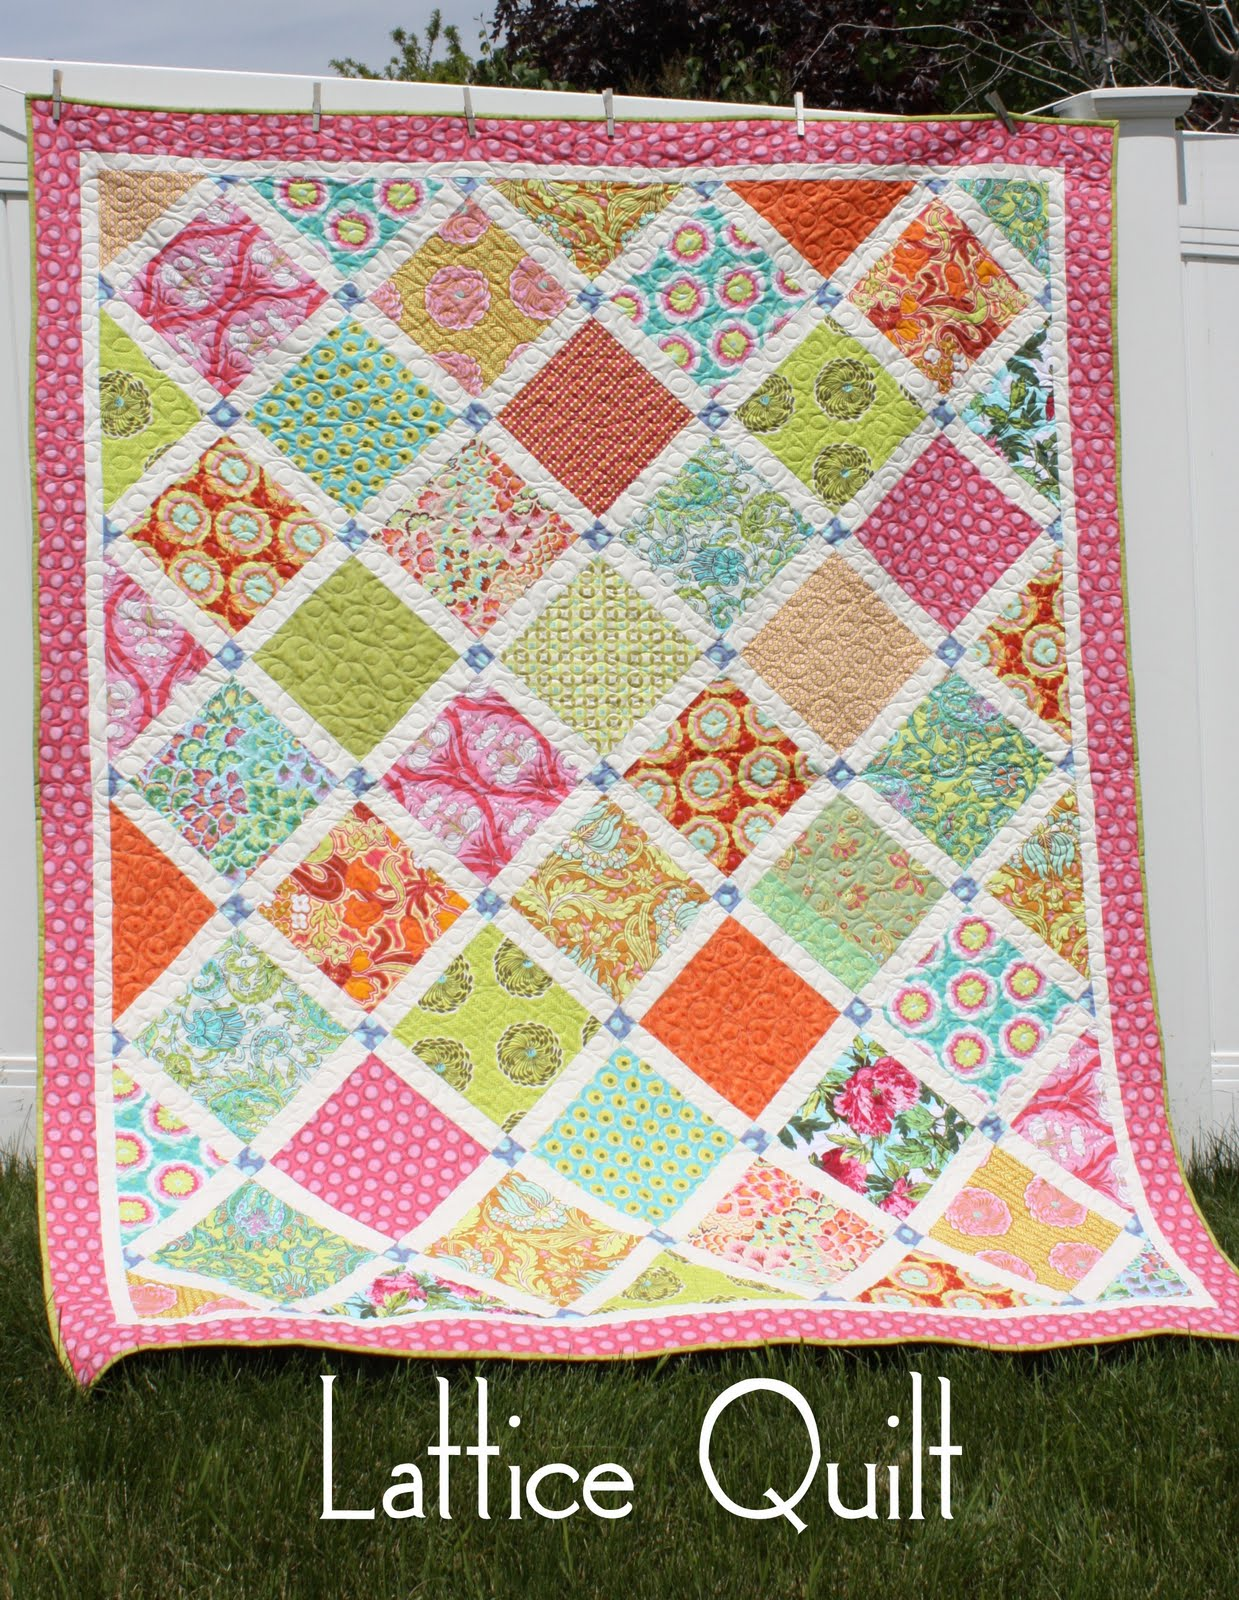 Layer Cake Quilt Patterns Easy : LAYER CAKE QUILT PATTERNS - FREE PATTERNS